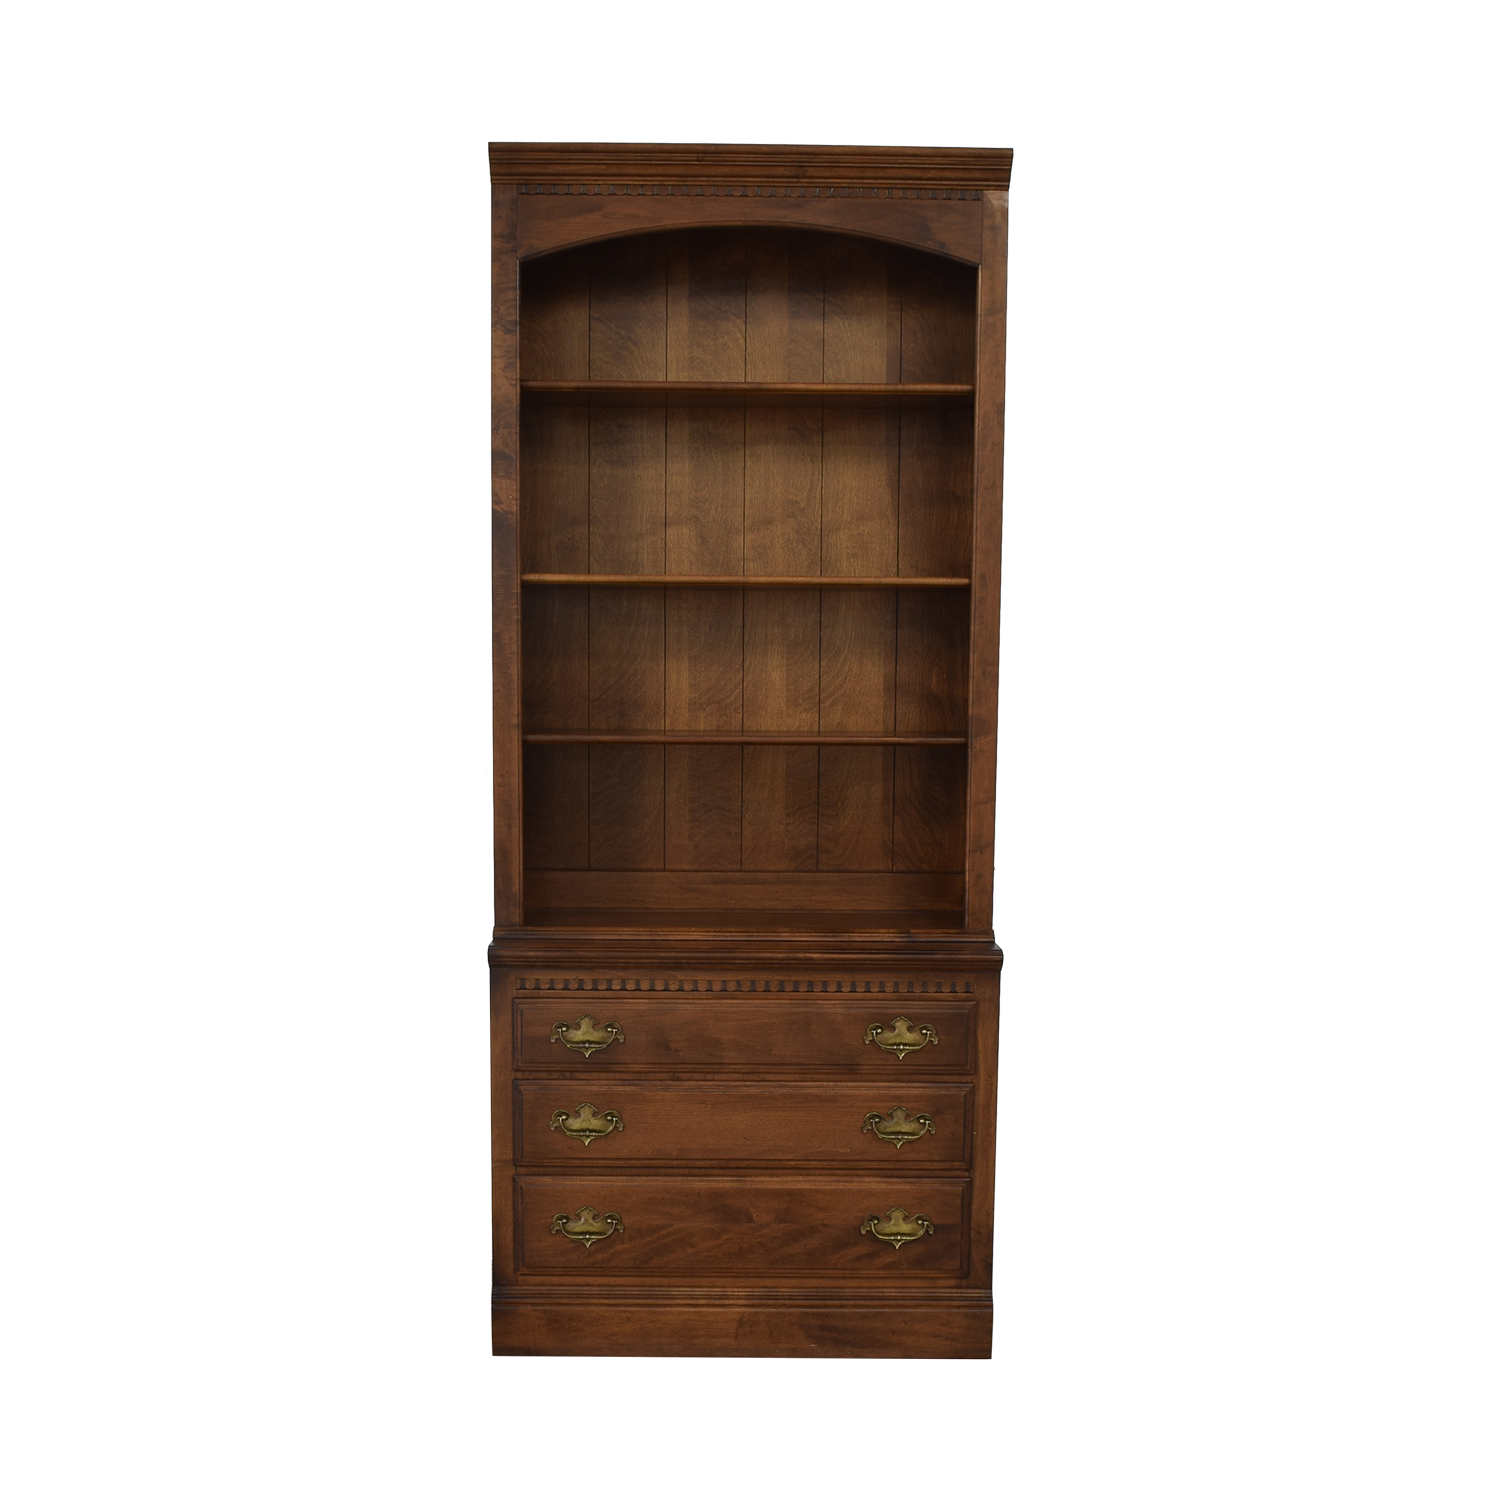 buy Ethan Allen Bookcase with Drawers Ethan Allen Bookcases & Shelving